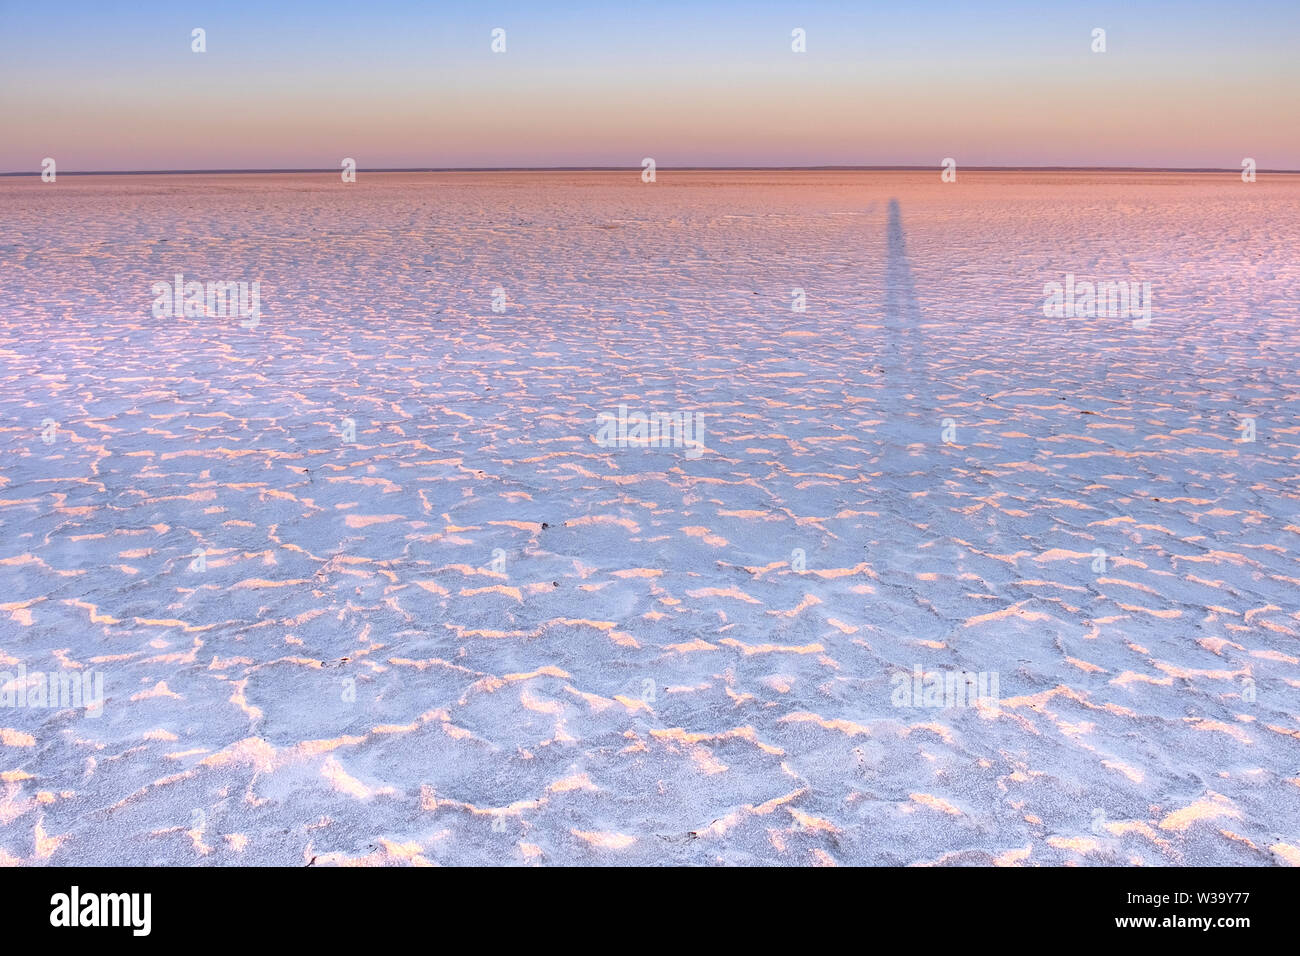 Sunset / Sunrise at white salt crusts on mud at the shore of the large, arid-zone Kati Thanda-Lake Eyre in outback in northern South Australia. - Stock Image